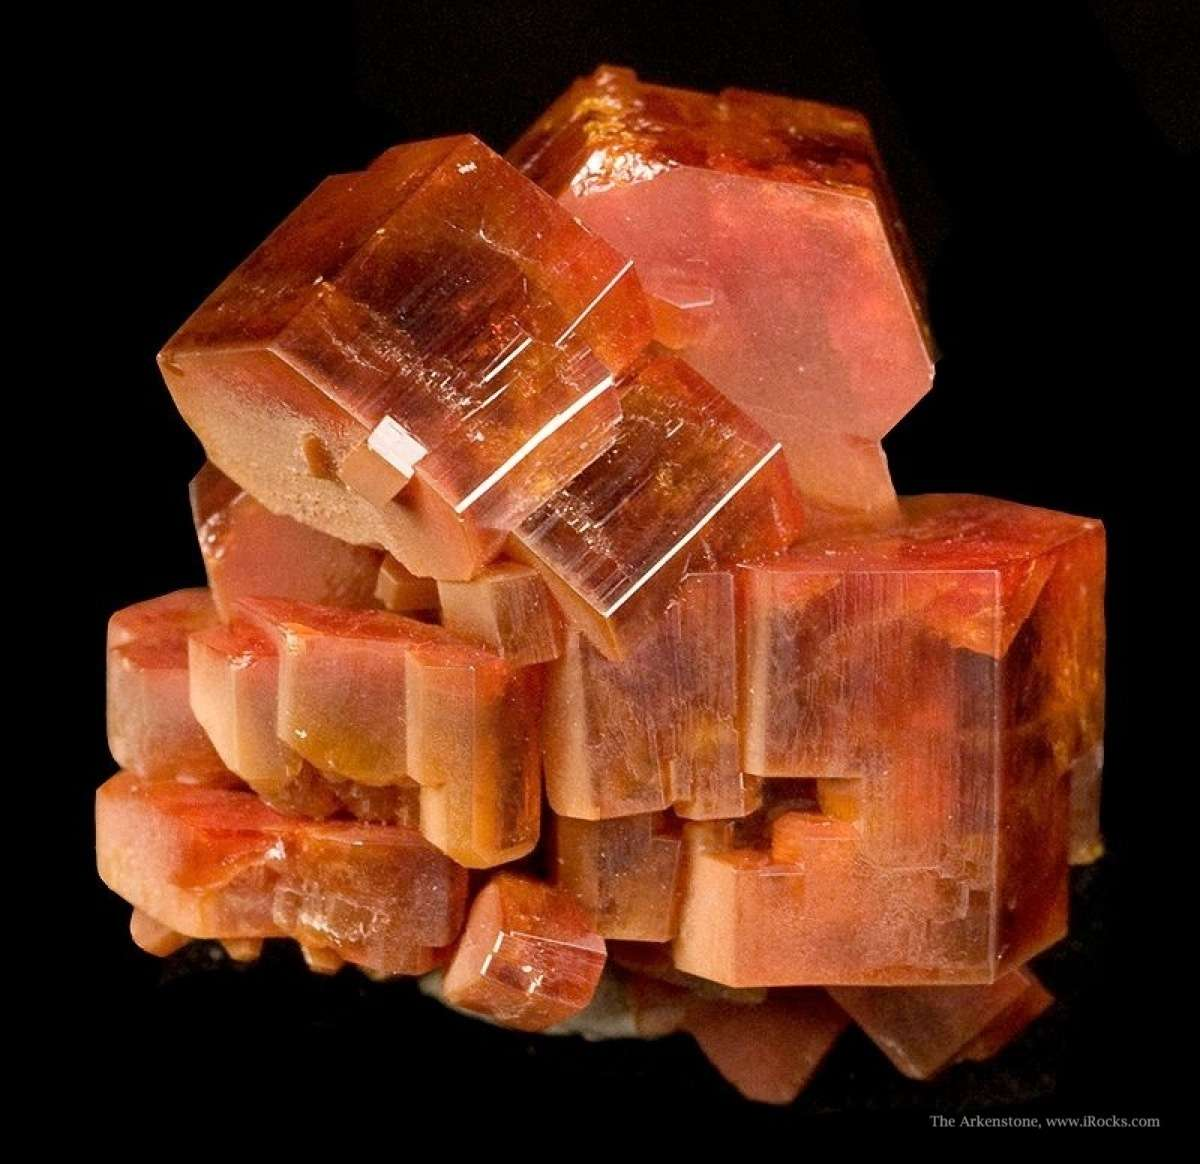 From 2009 noted thick robust crystals sharp specimen crystals 2 cm The